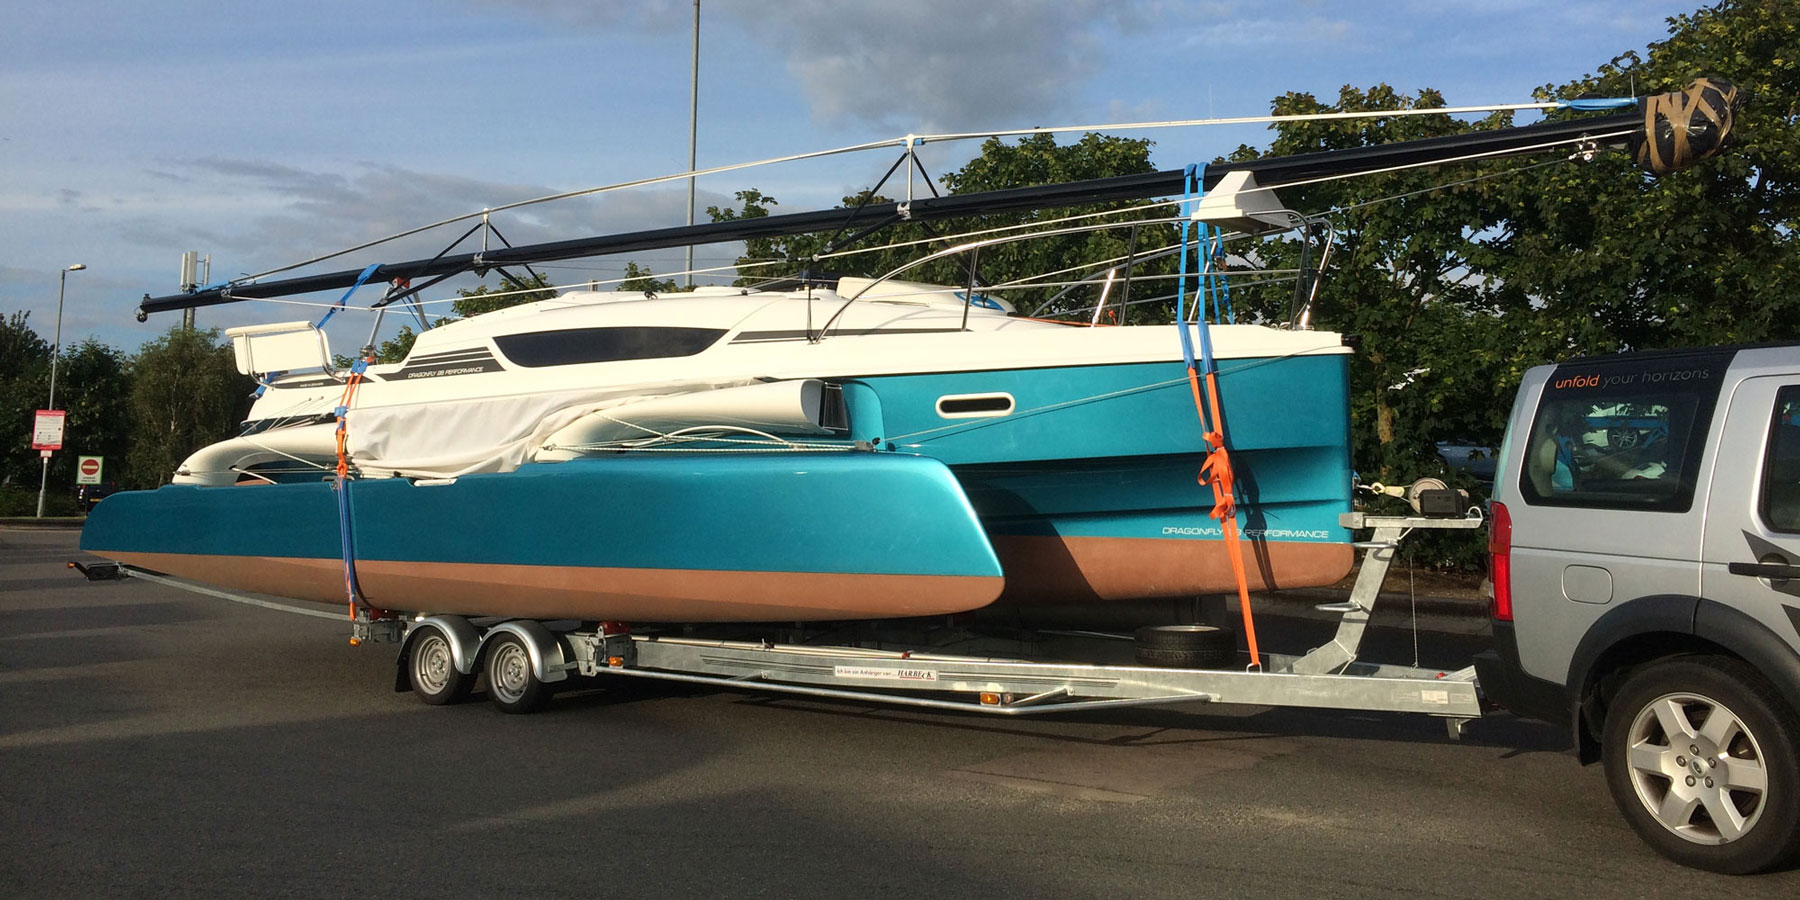 Dragonfly 28 trimaran on road trailer